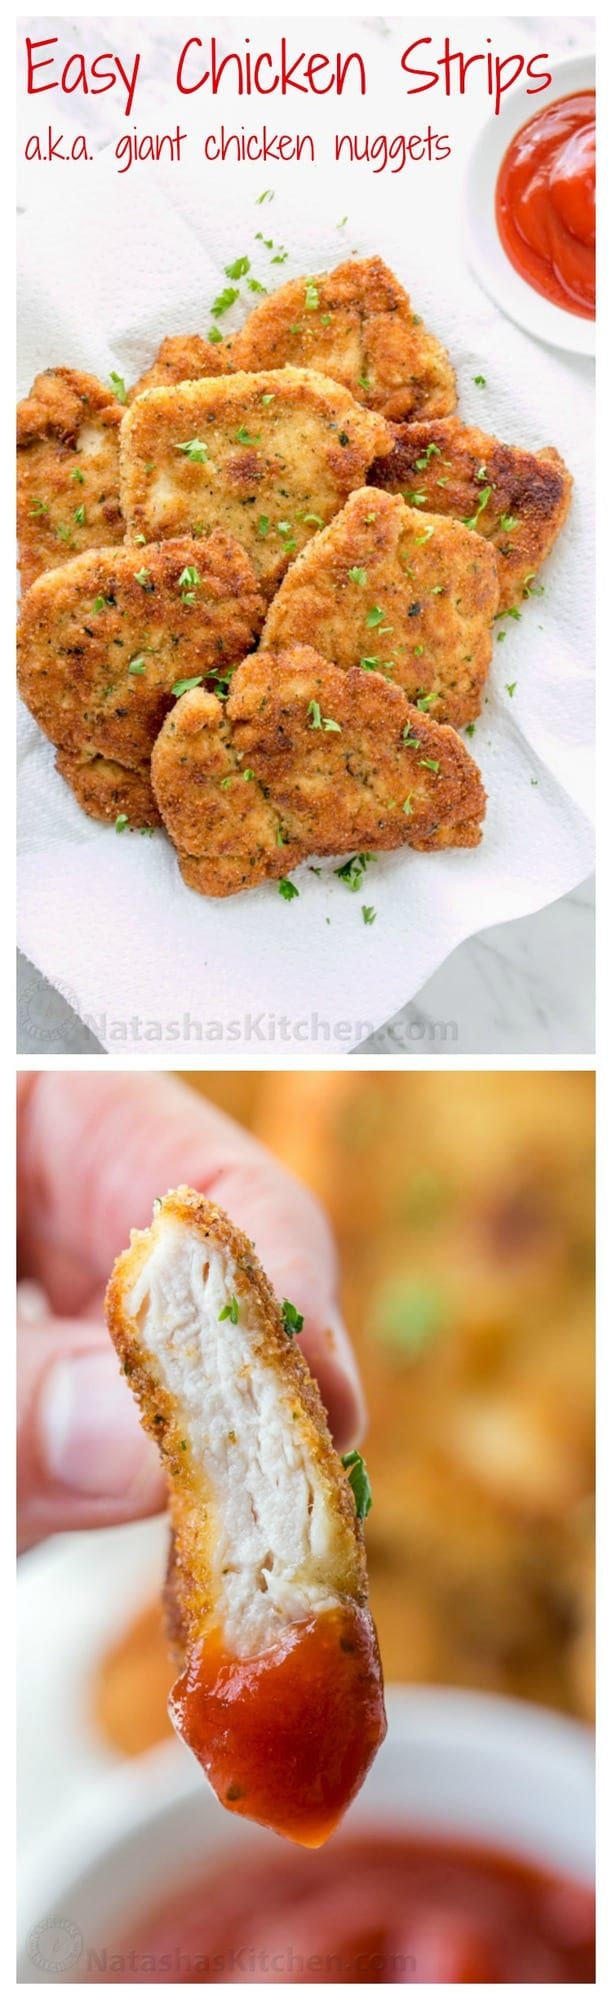 You can serve these easy chicken strips so many ways!! Dipped in sauce as an appetizer, next to mashed potatoes for dinner or as chicken sandwich patties | natashaskitchen.com